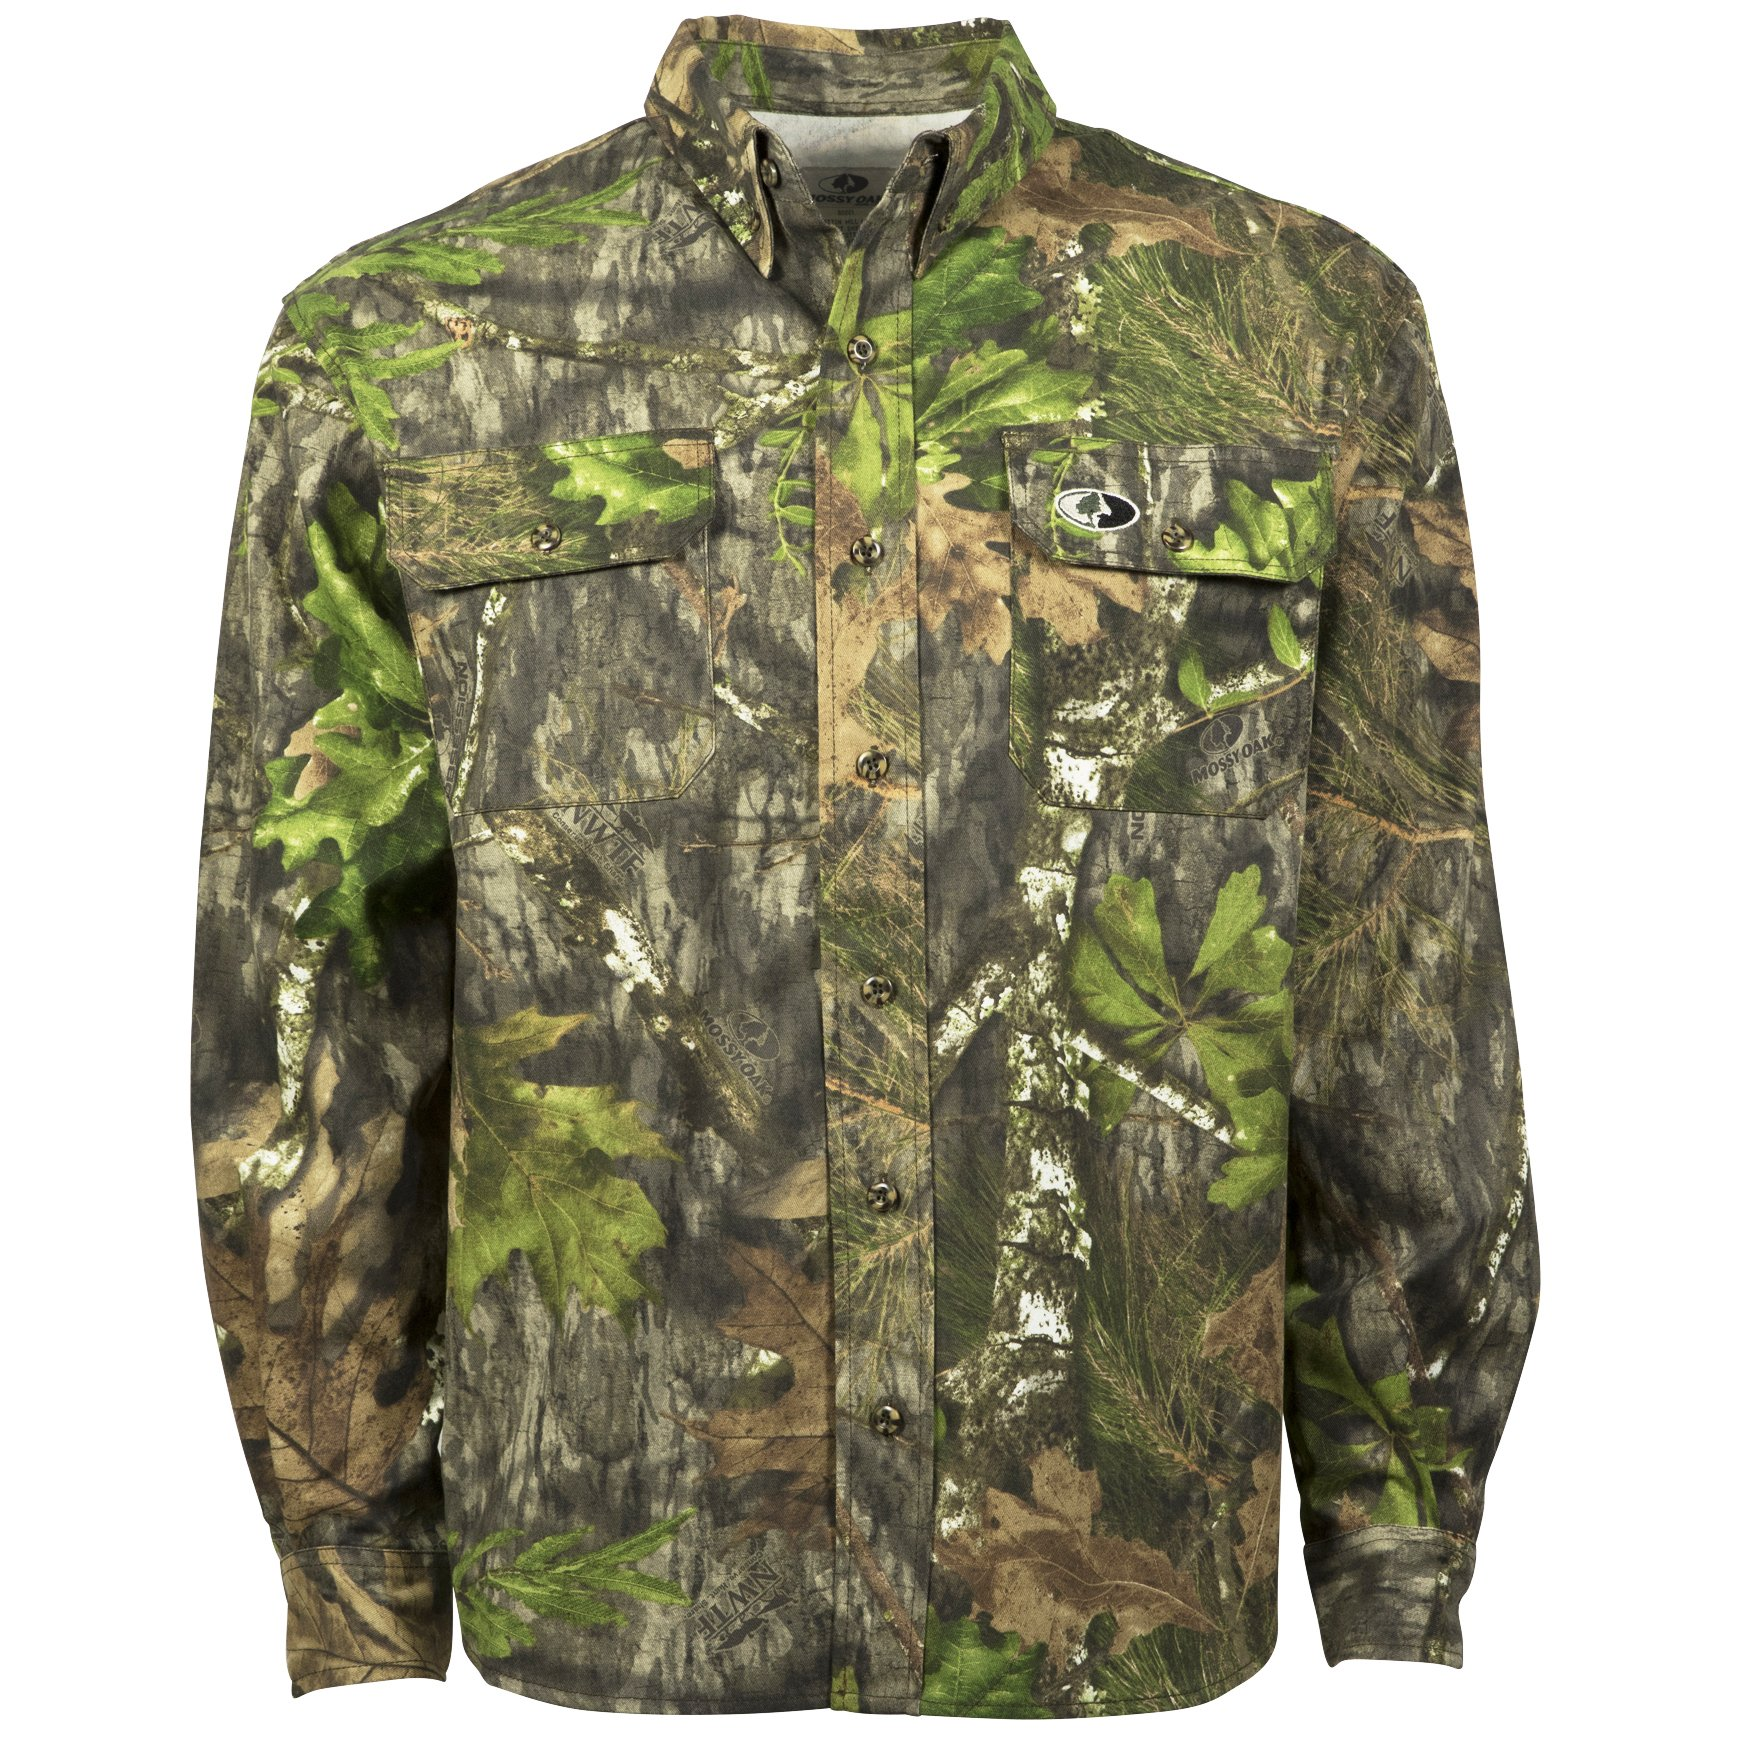 Mossy Oak Camouflage Cotton Mill Hunt Shirt, Obsession, Large by Mossy Oak